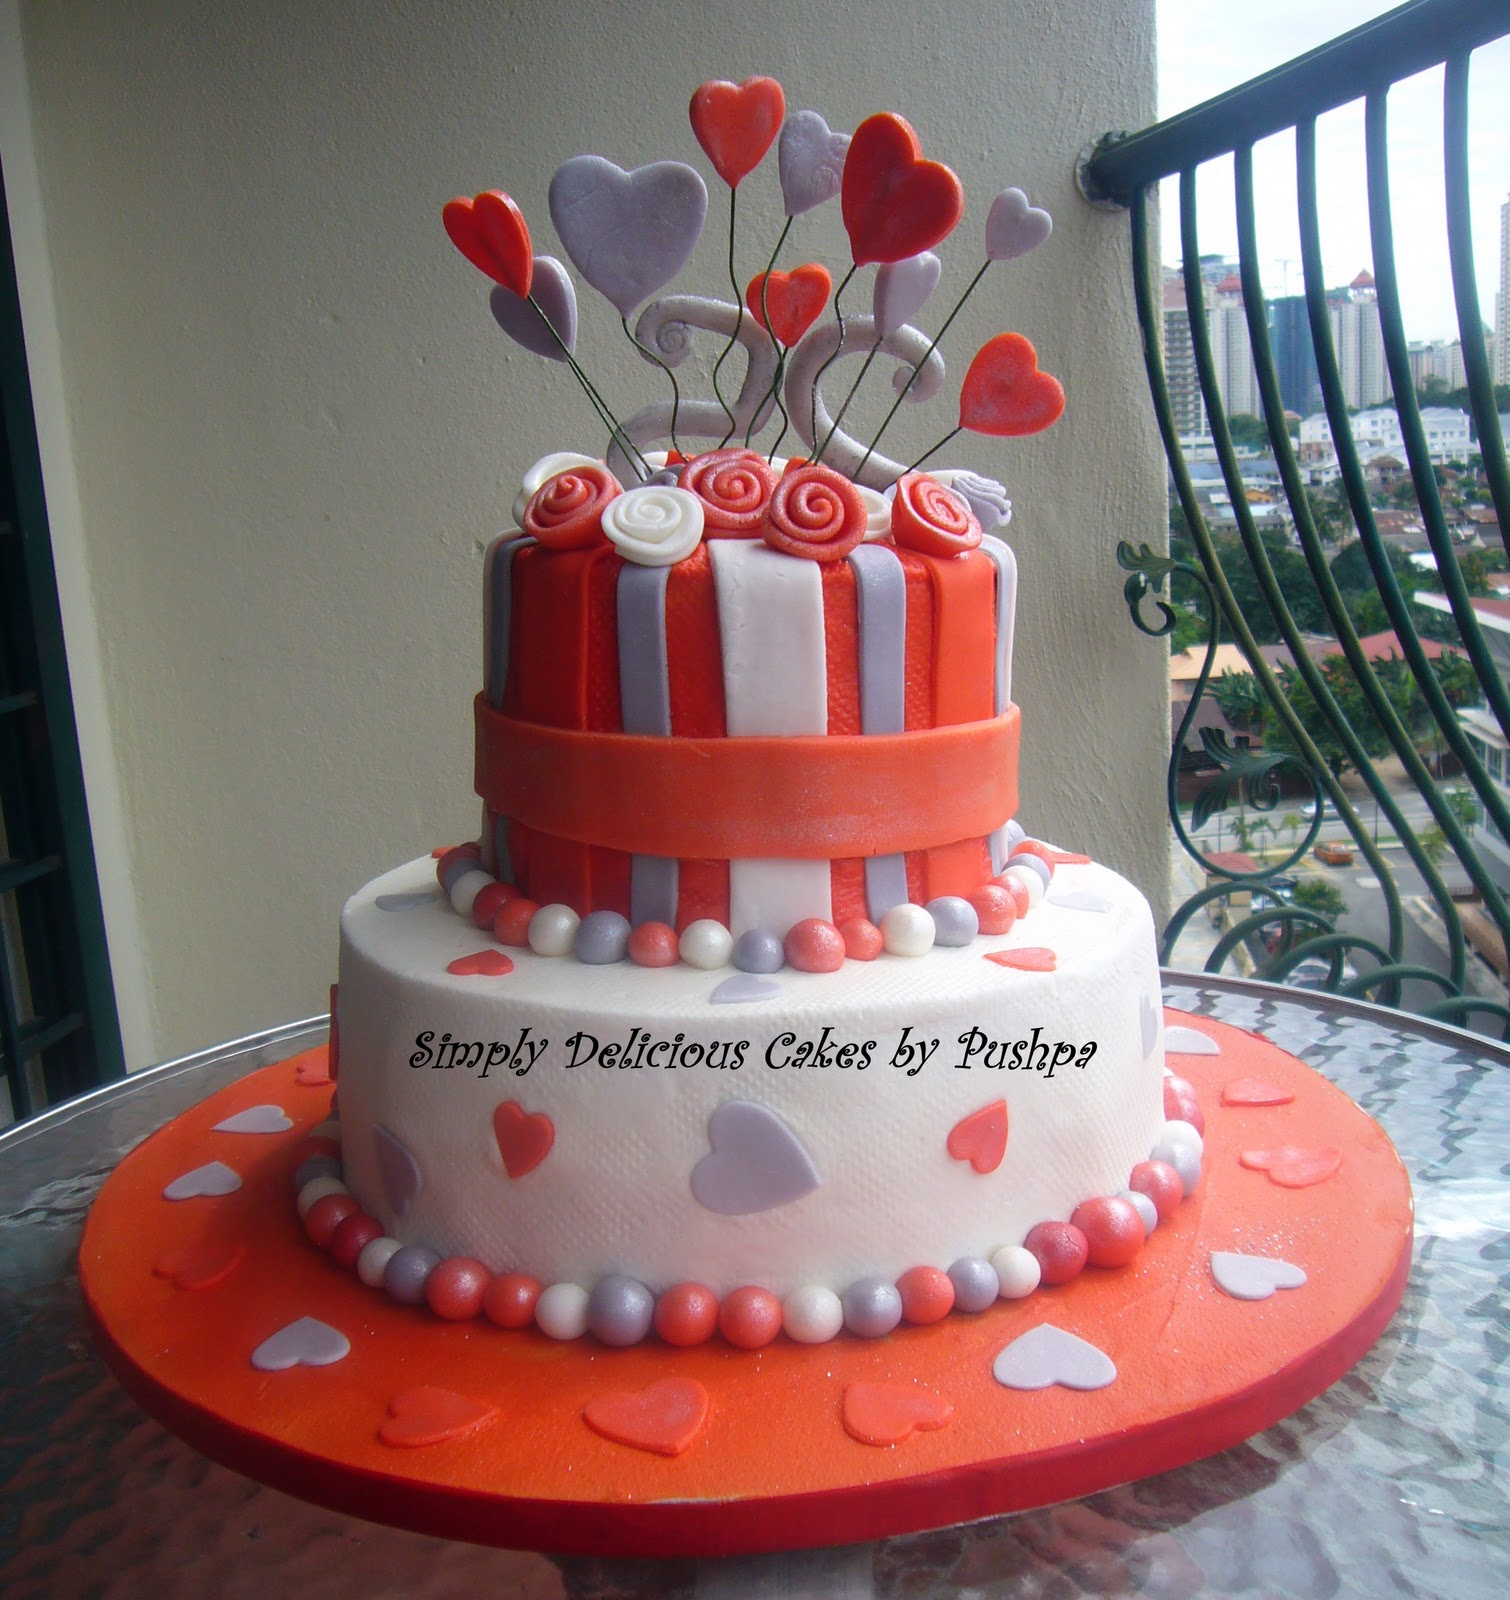 SIMPLY DELICIOUS CAKES Silver Jubilee Anniversary